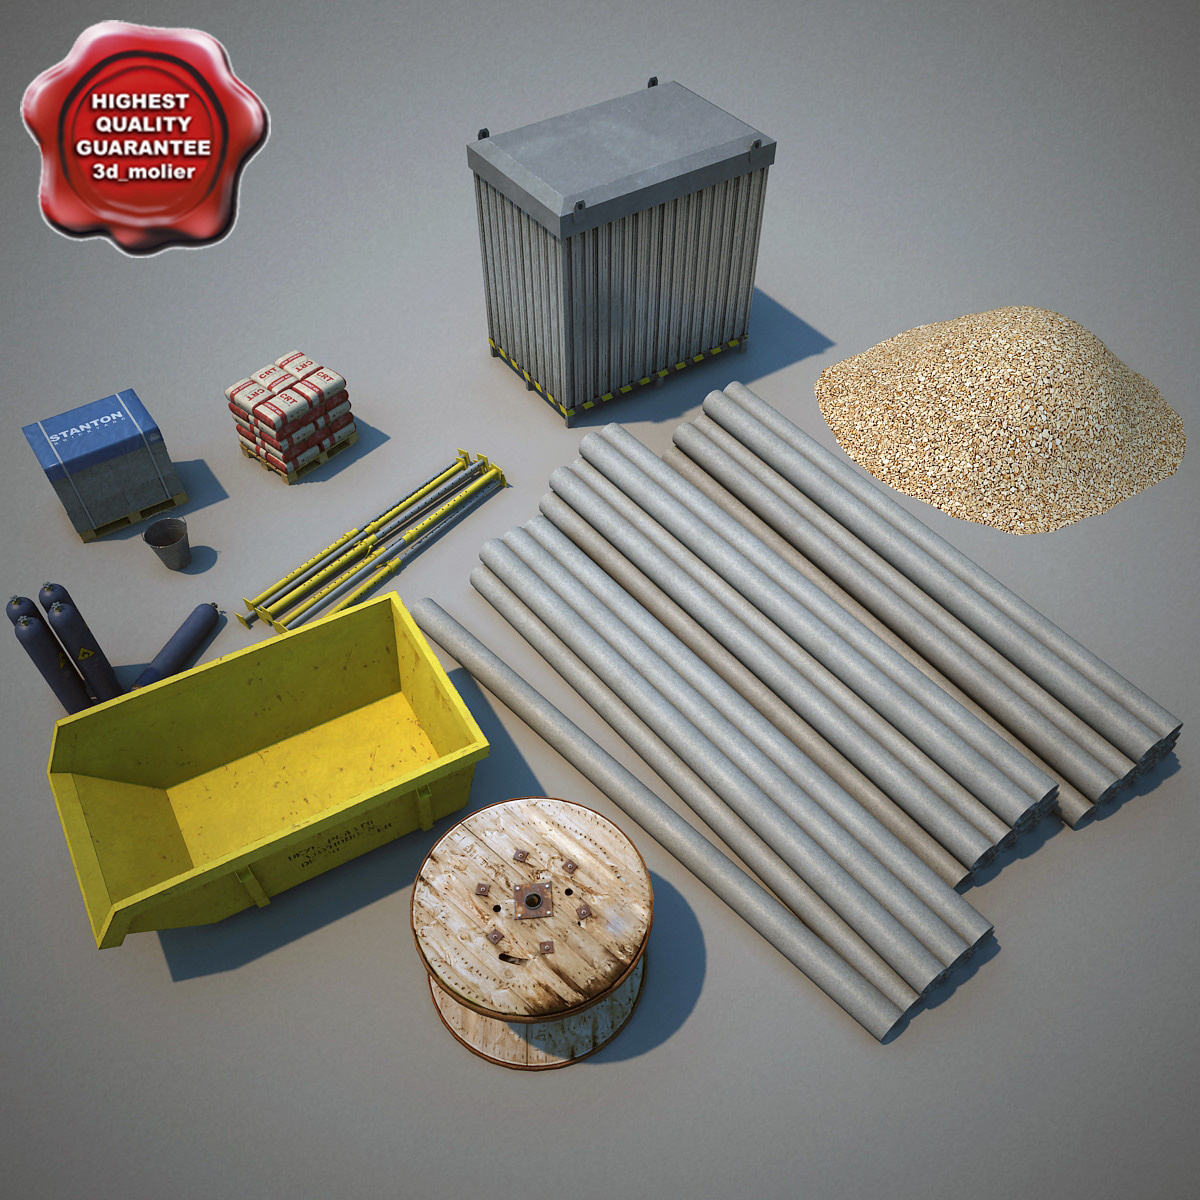 Construction_Elements_collection_00.jpg